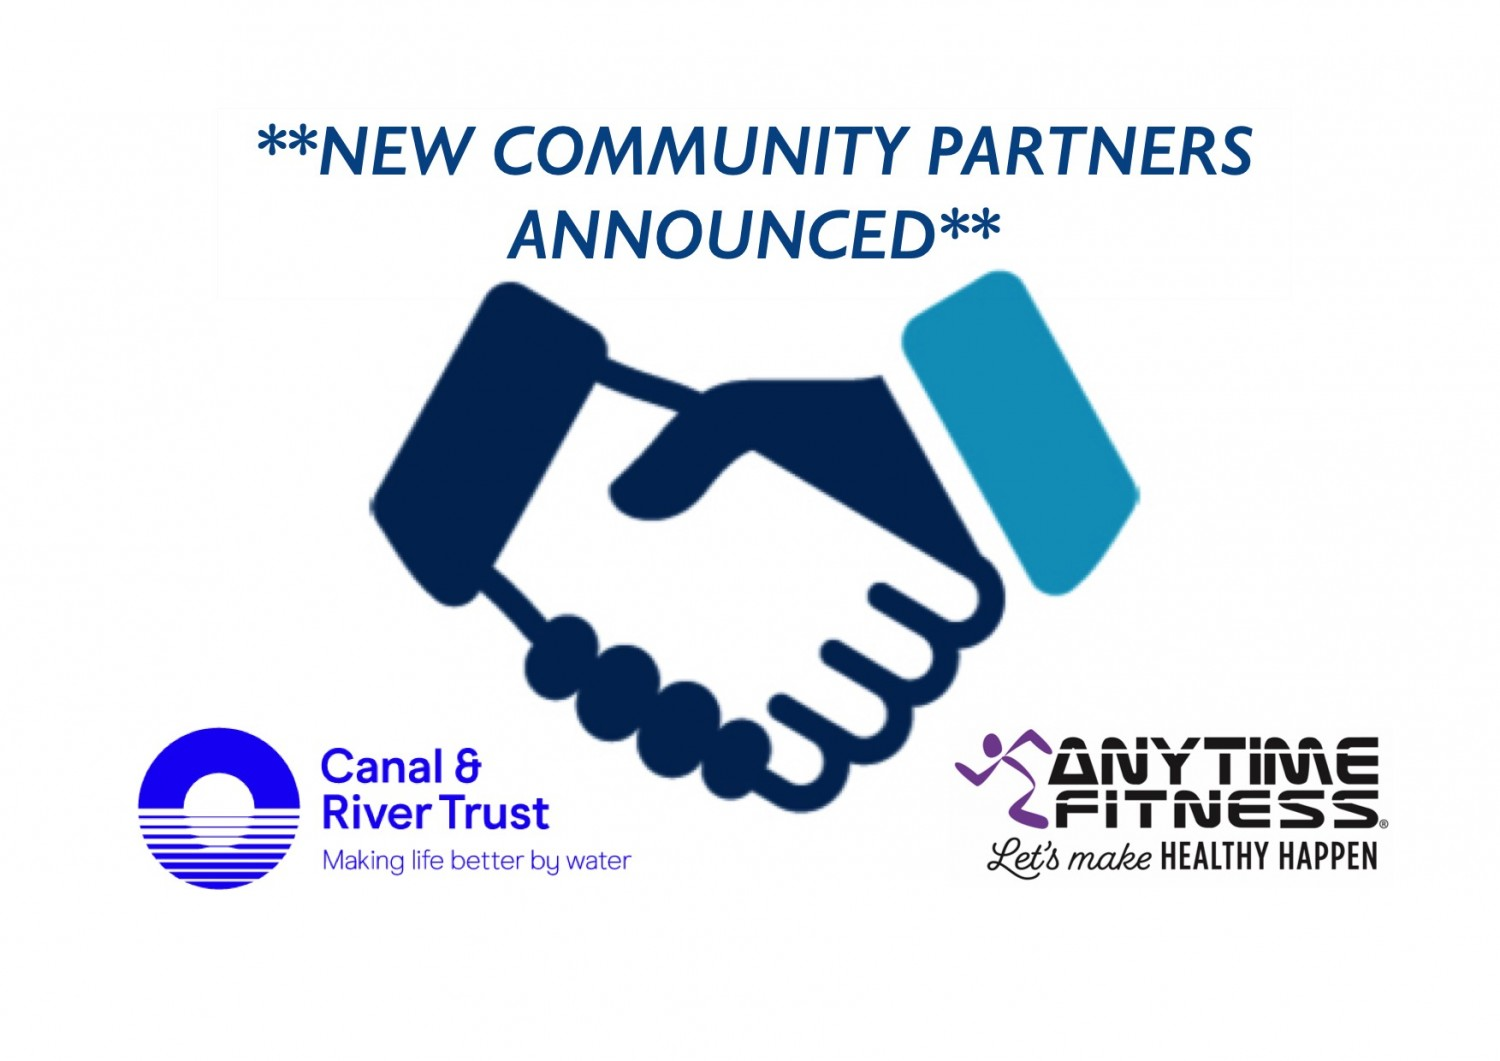 New Community Partners Announced!